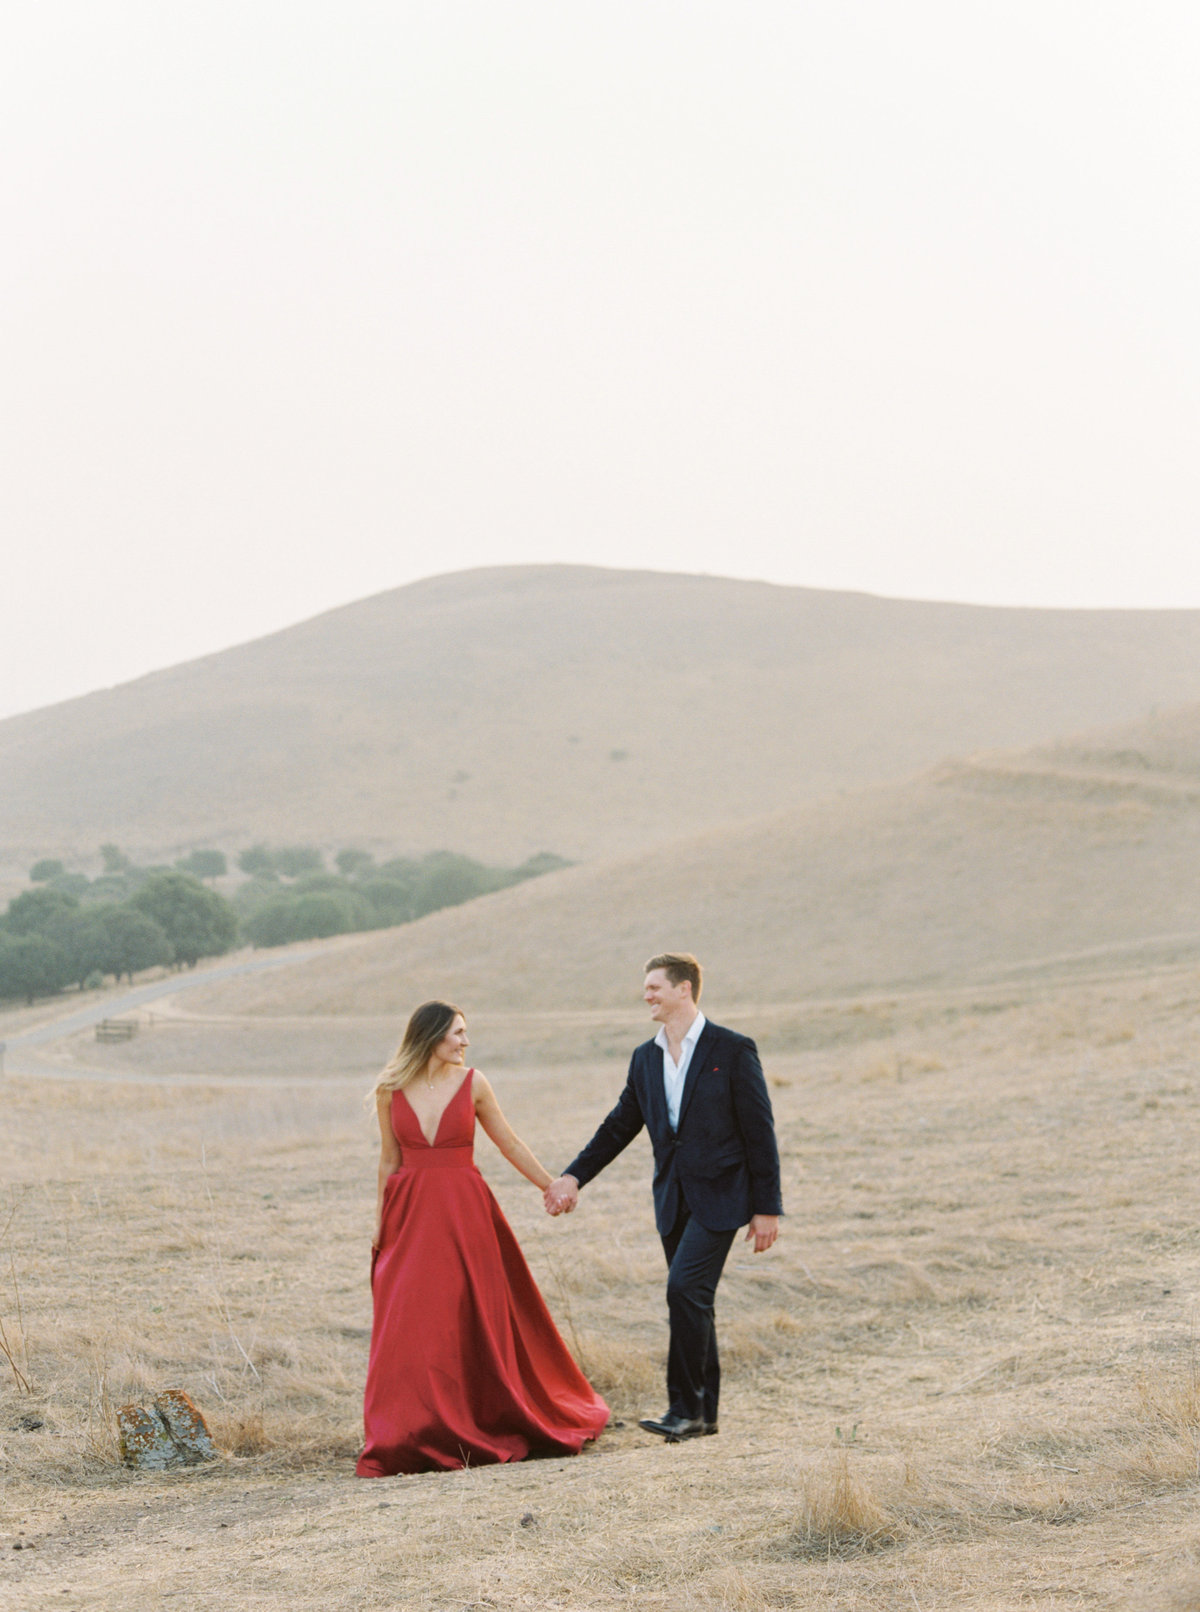 Kirsten + Peter Coyote Hills Regional Park Engagement Session Sneak Peeks - Cassie Valente Photography 0071